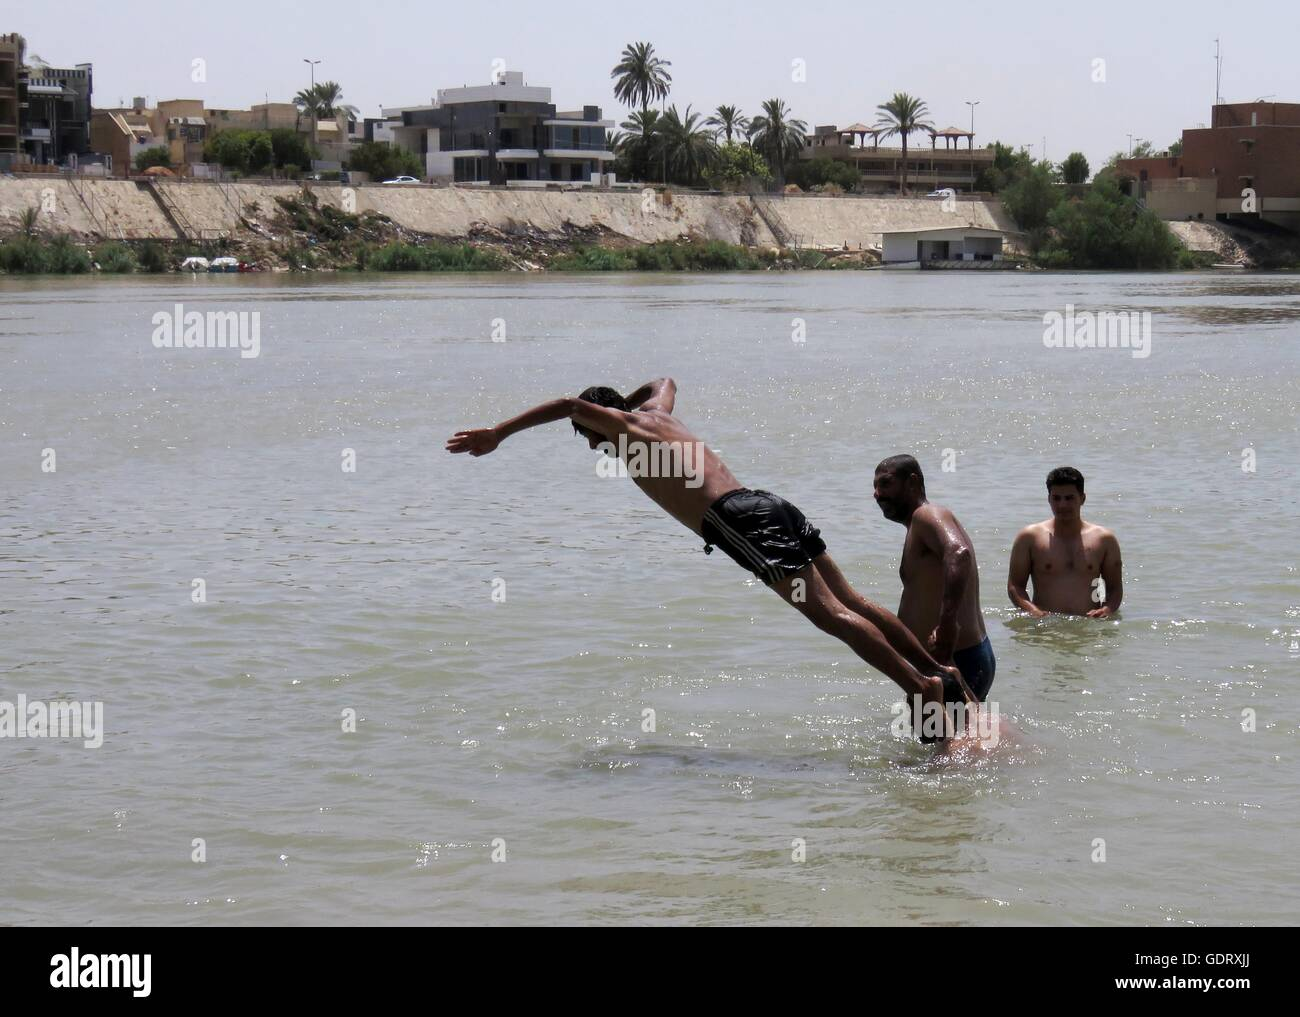 Baghdad, Iraq. 20th July, 2016. An Iraqi man jumps into Tigris river to cool down while temperature reaches above Stock Photo